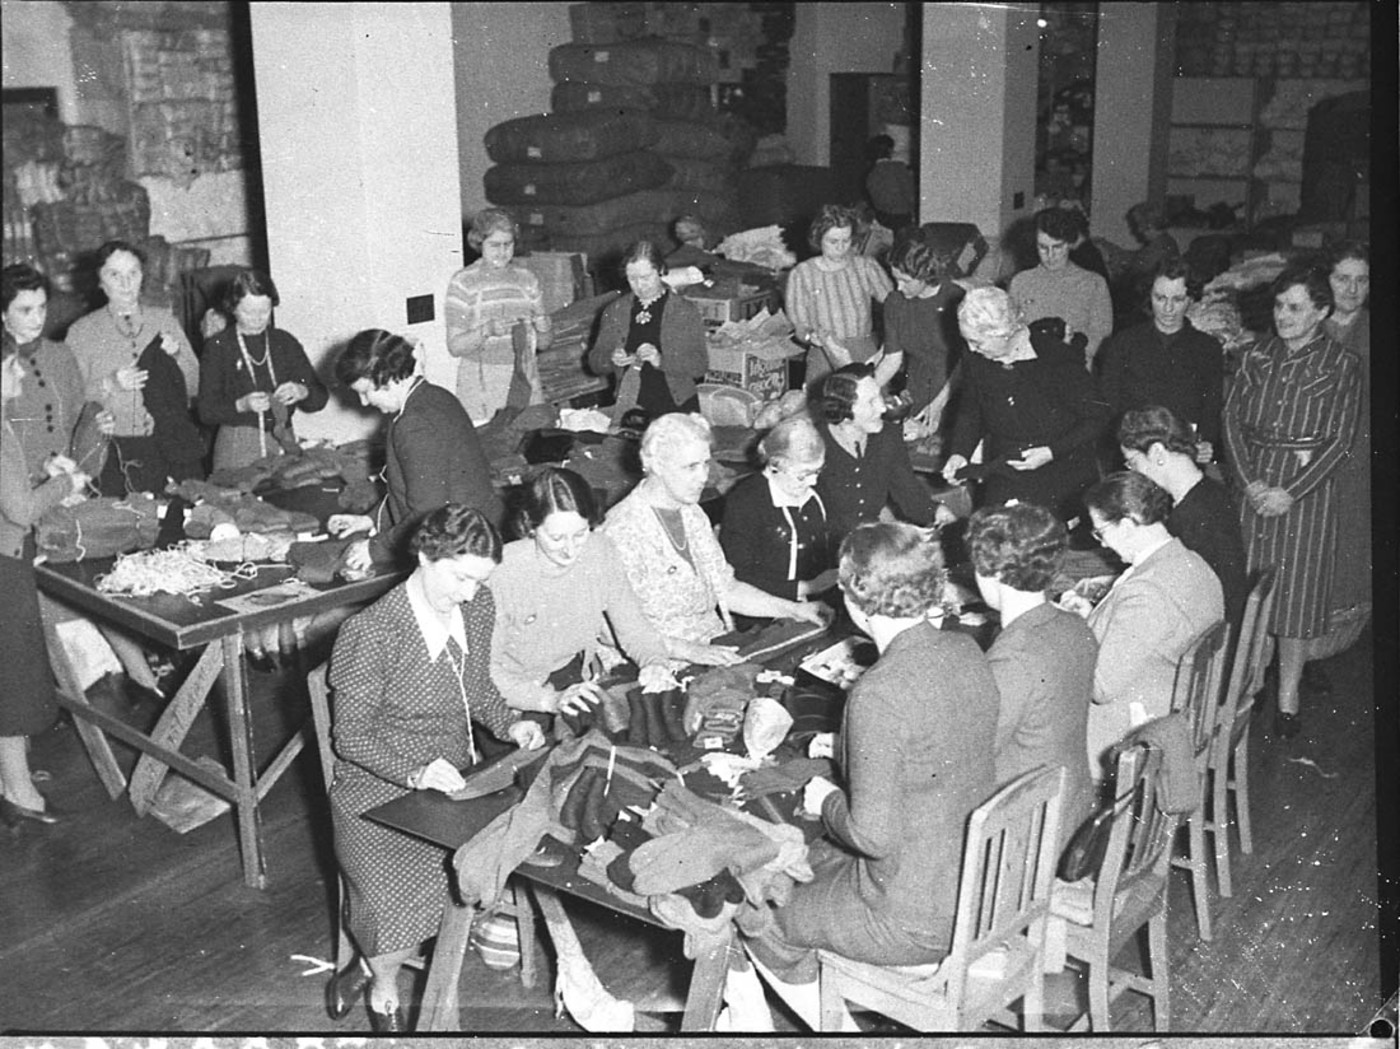 Women volunteer workers doing up clothing parcels at the ACF rooms (taken for Australian Comforts Fund), by Sam Hood, c. 1944